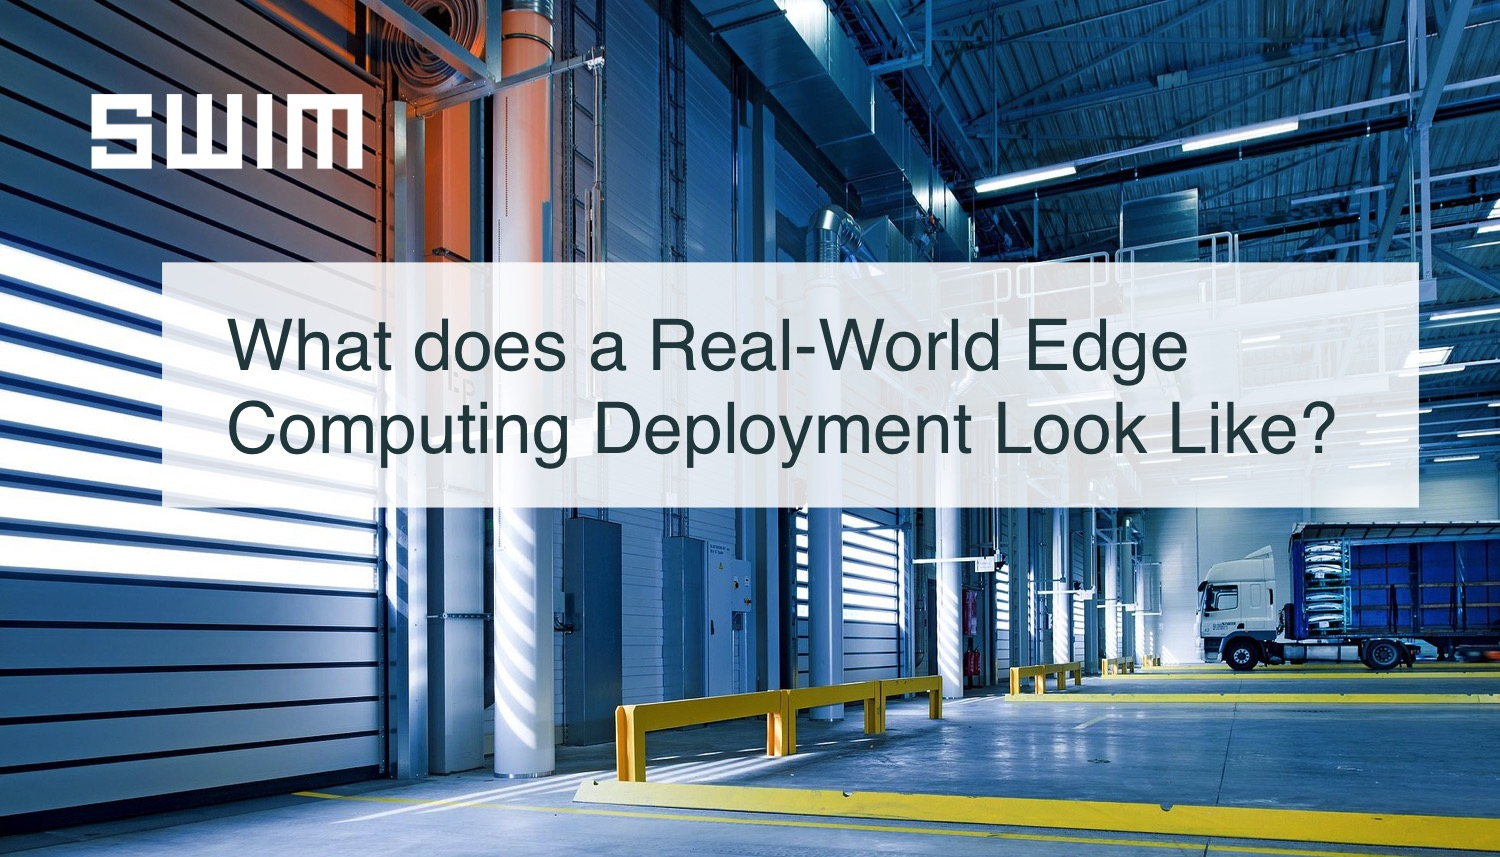 What does a Real-World Edge Computing Deployment Look Like? | Swim Inc.